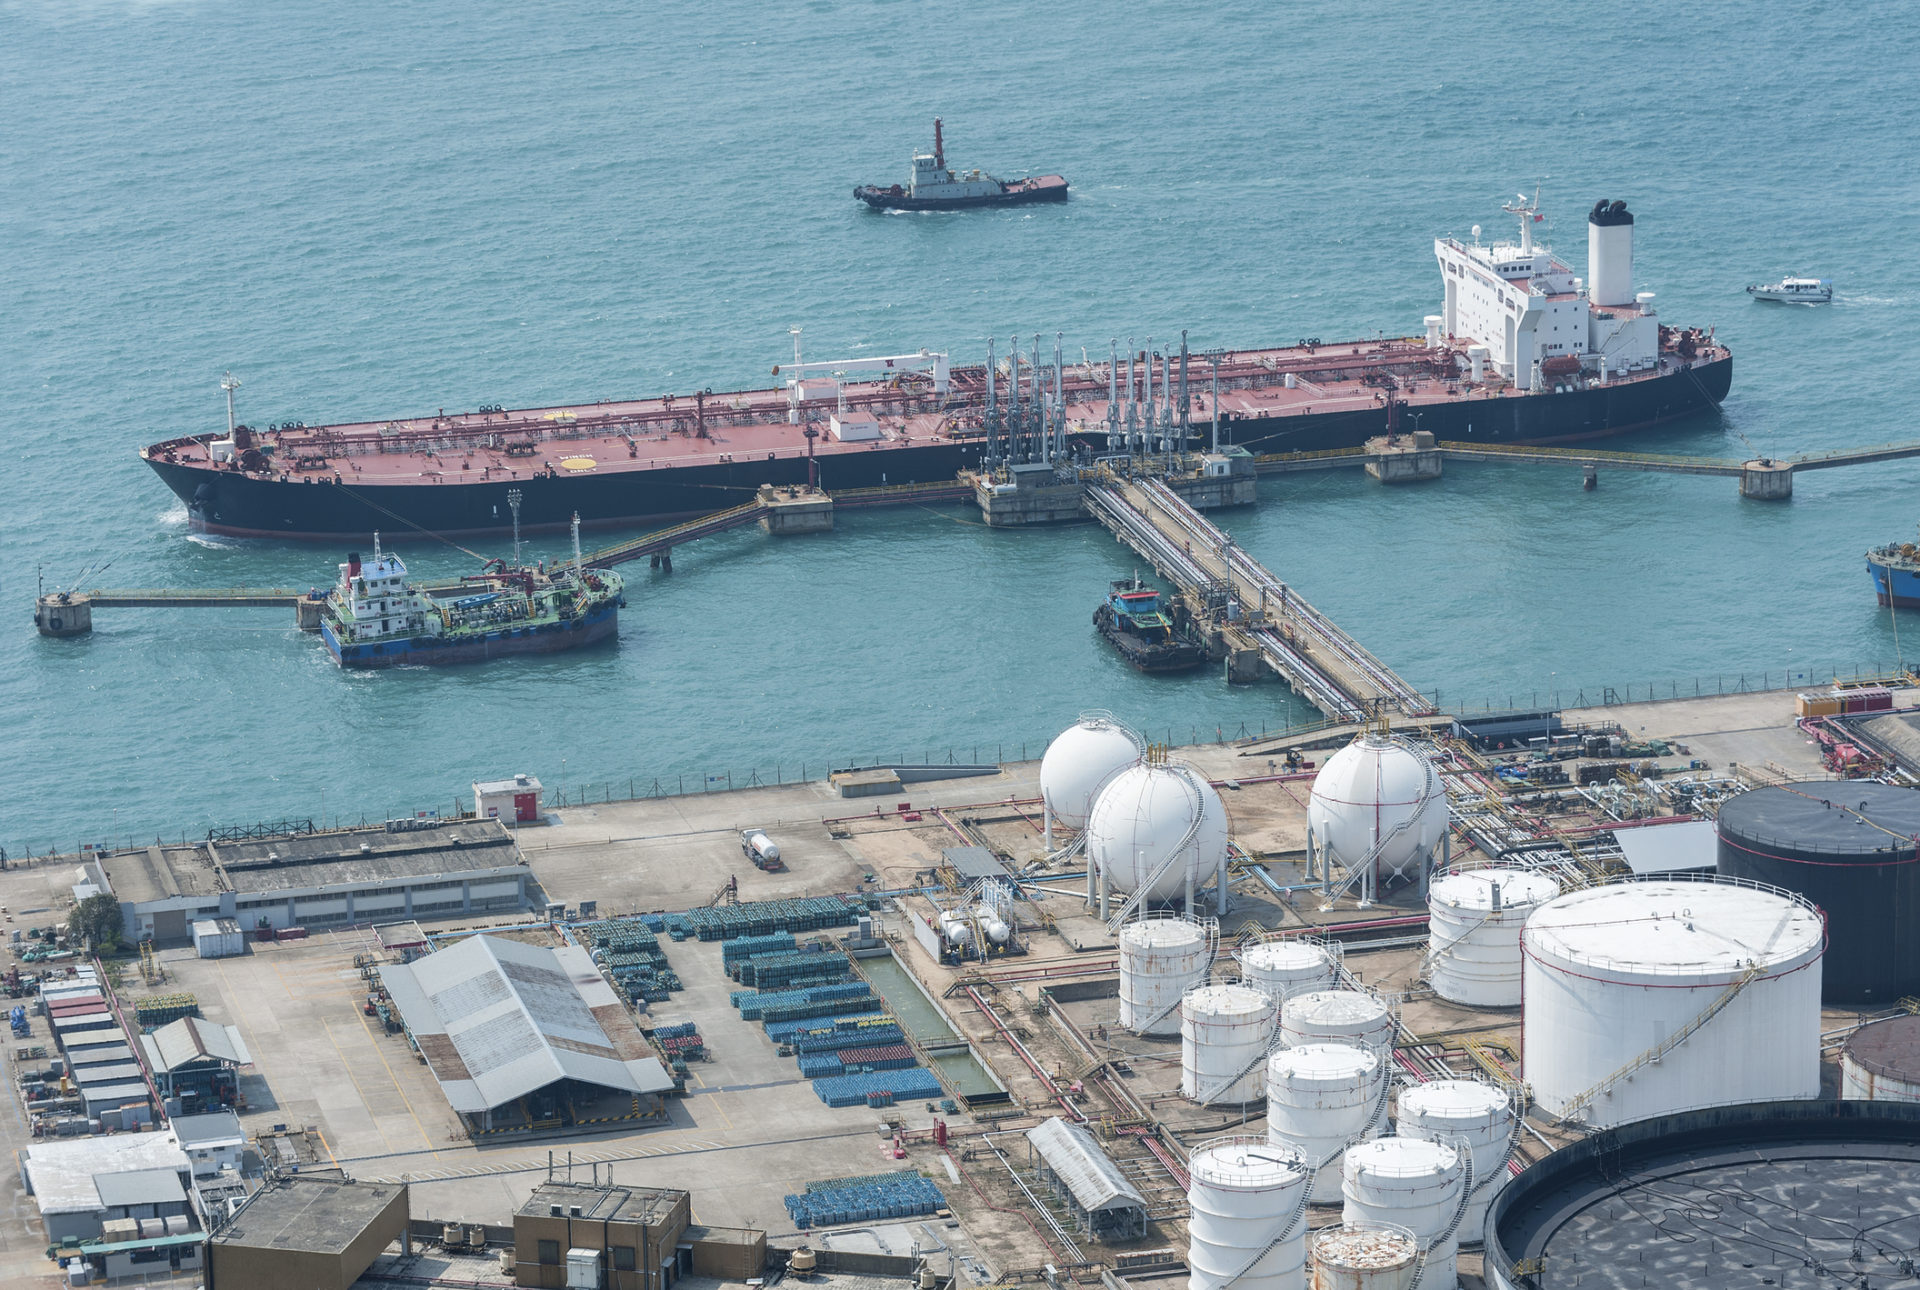 Oil Storage tank and oil tanker